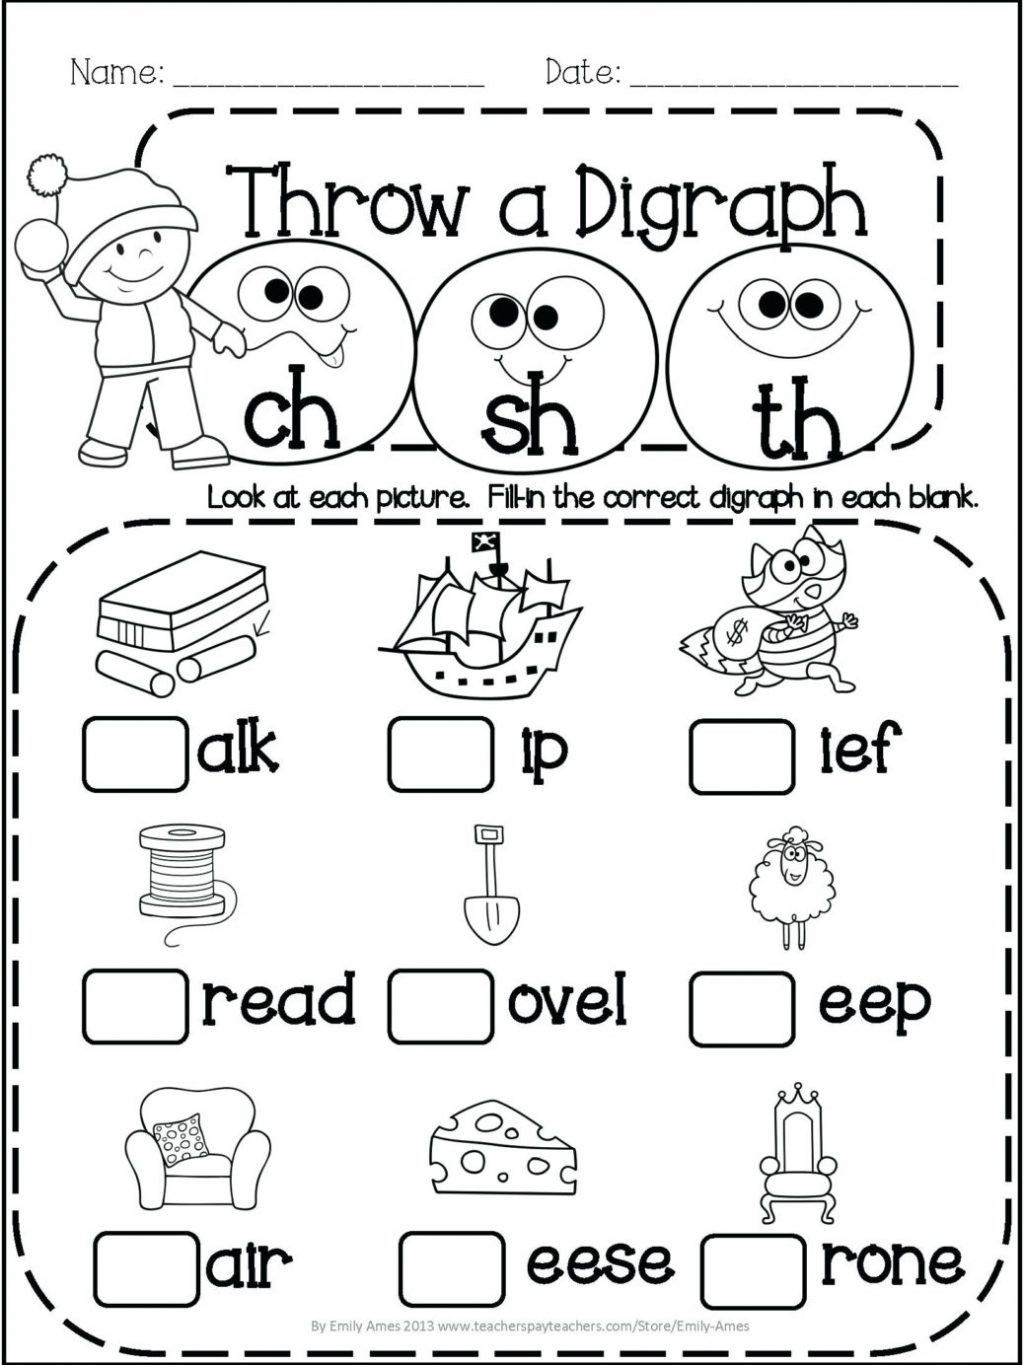 Blends Worksheet for First Grade Worksheet Awesome 1st Grade Phonicsksheets Image Ideas